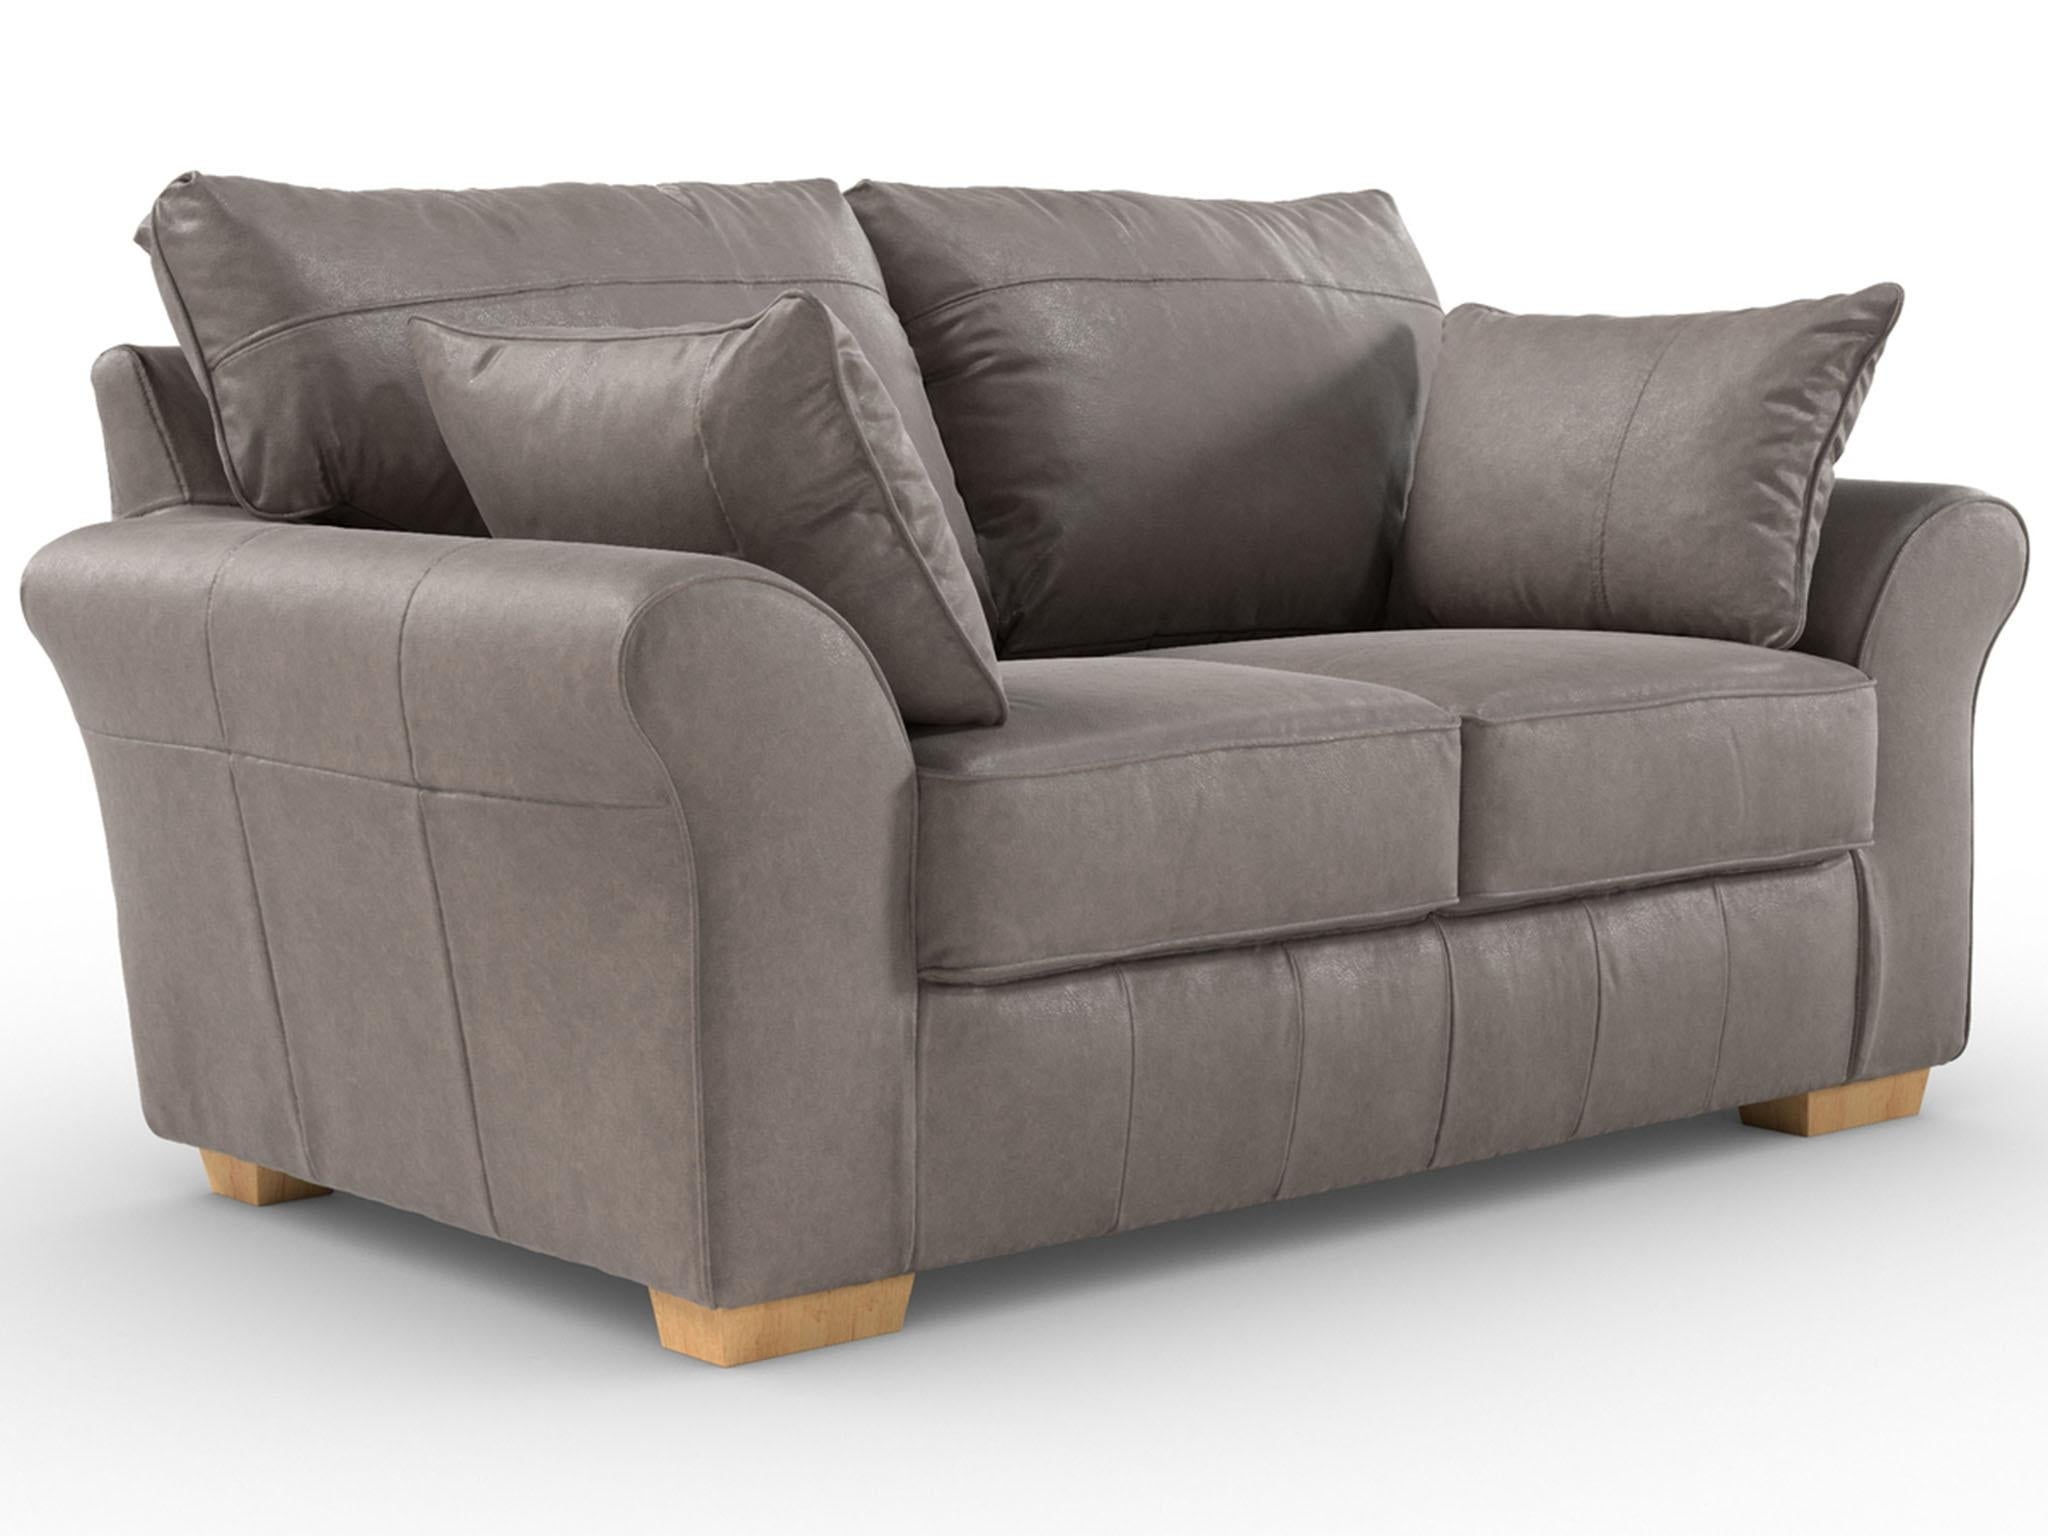 Enjoyable 10 Best Leather Sofas The Independent Onthecornerstone Fun Painted Chair Ideas Images Onthecornerstoneorg